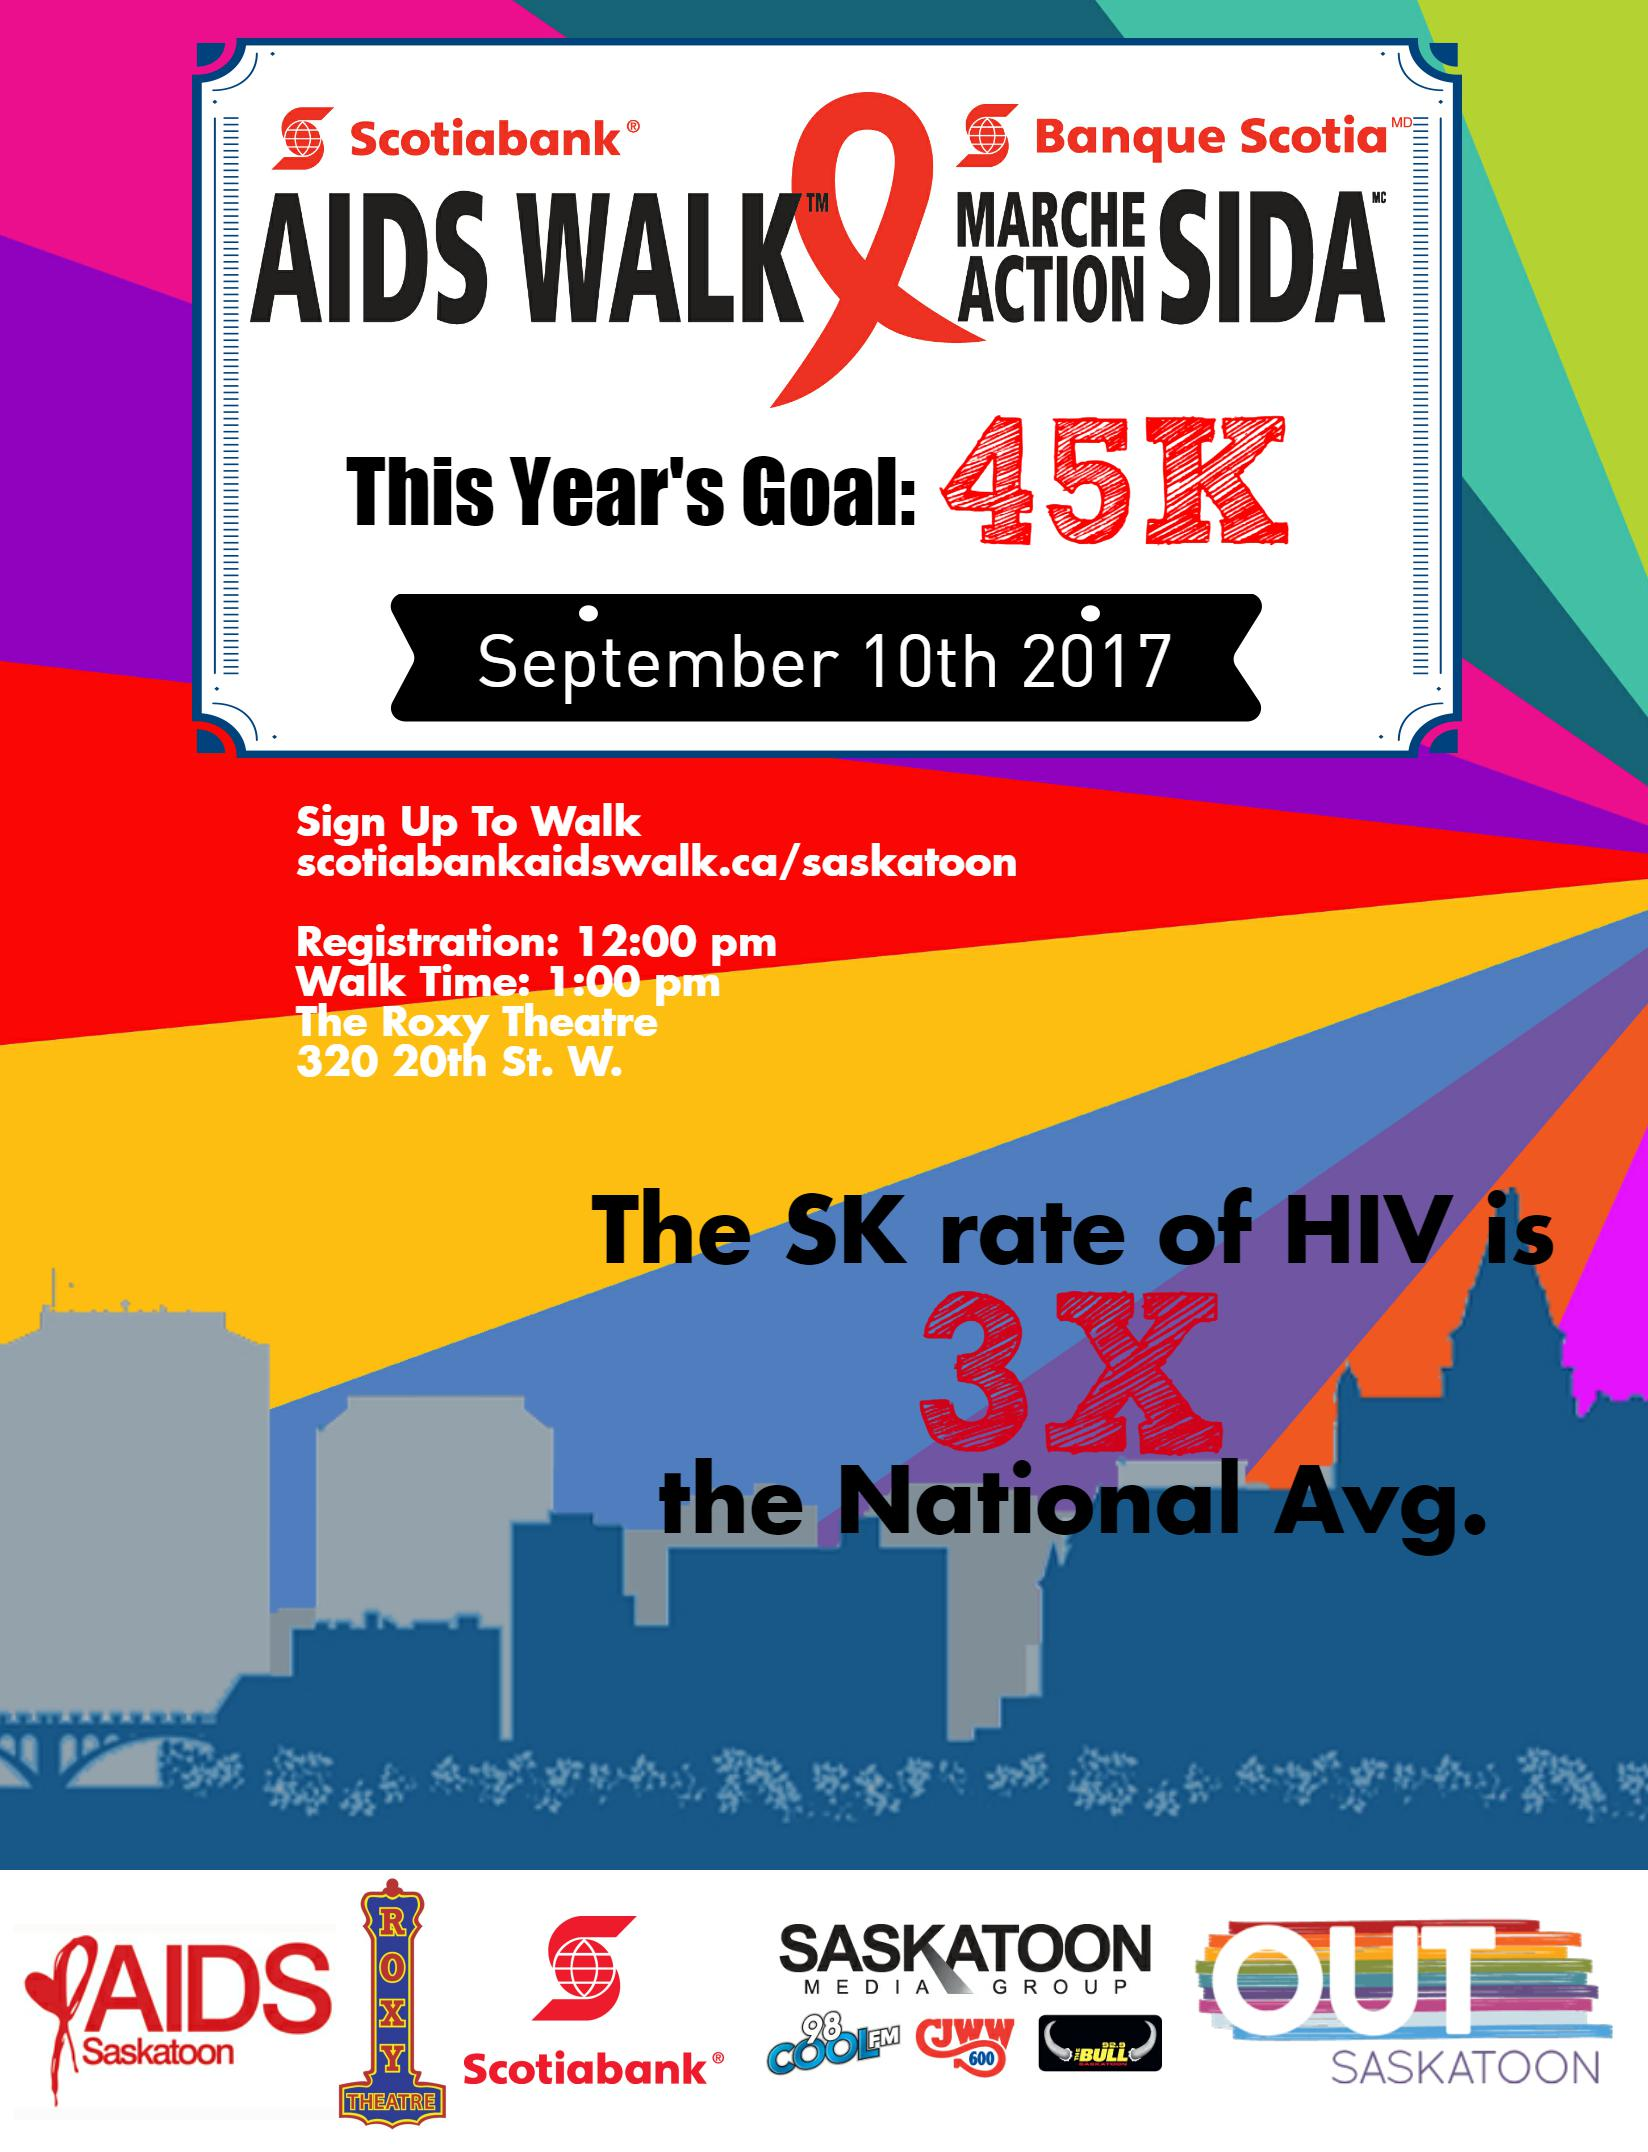 final-aids-walk_23388923_94efcb8c198486754f6f6922f02c473e5c2519ea.jpeg